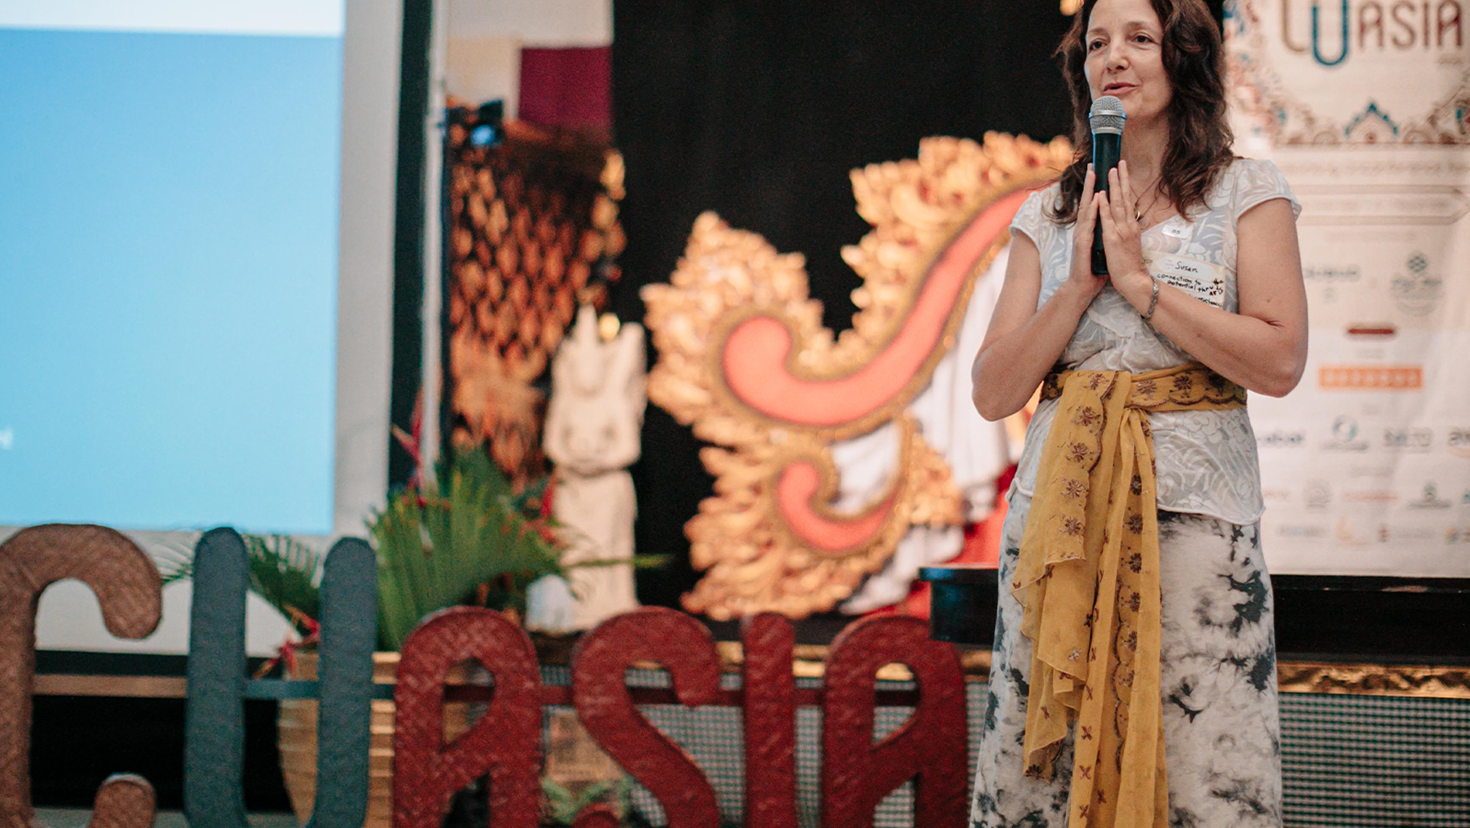 CUAsia 2020: A conference in paradise that stole our hearts